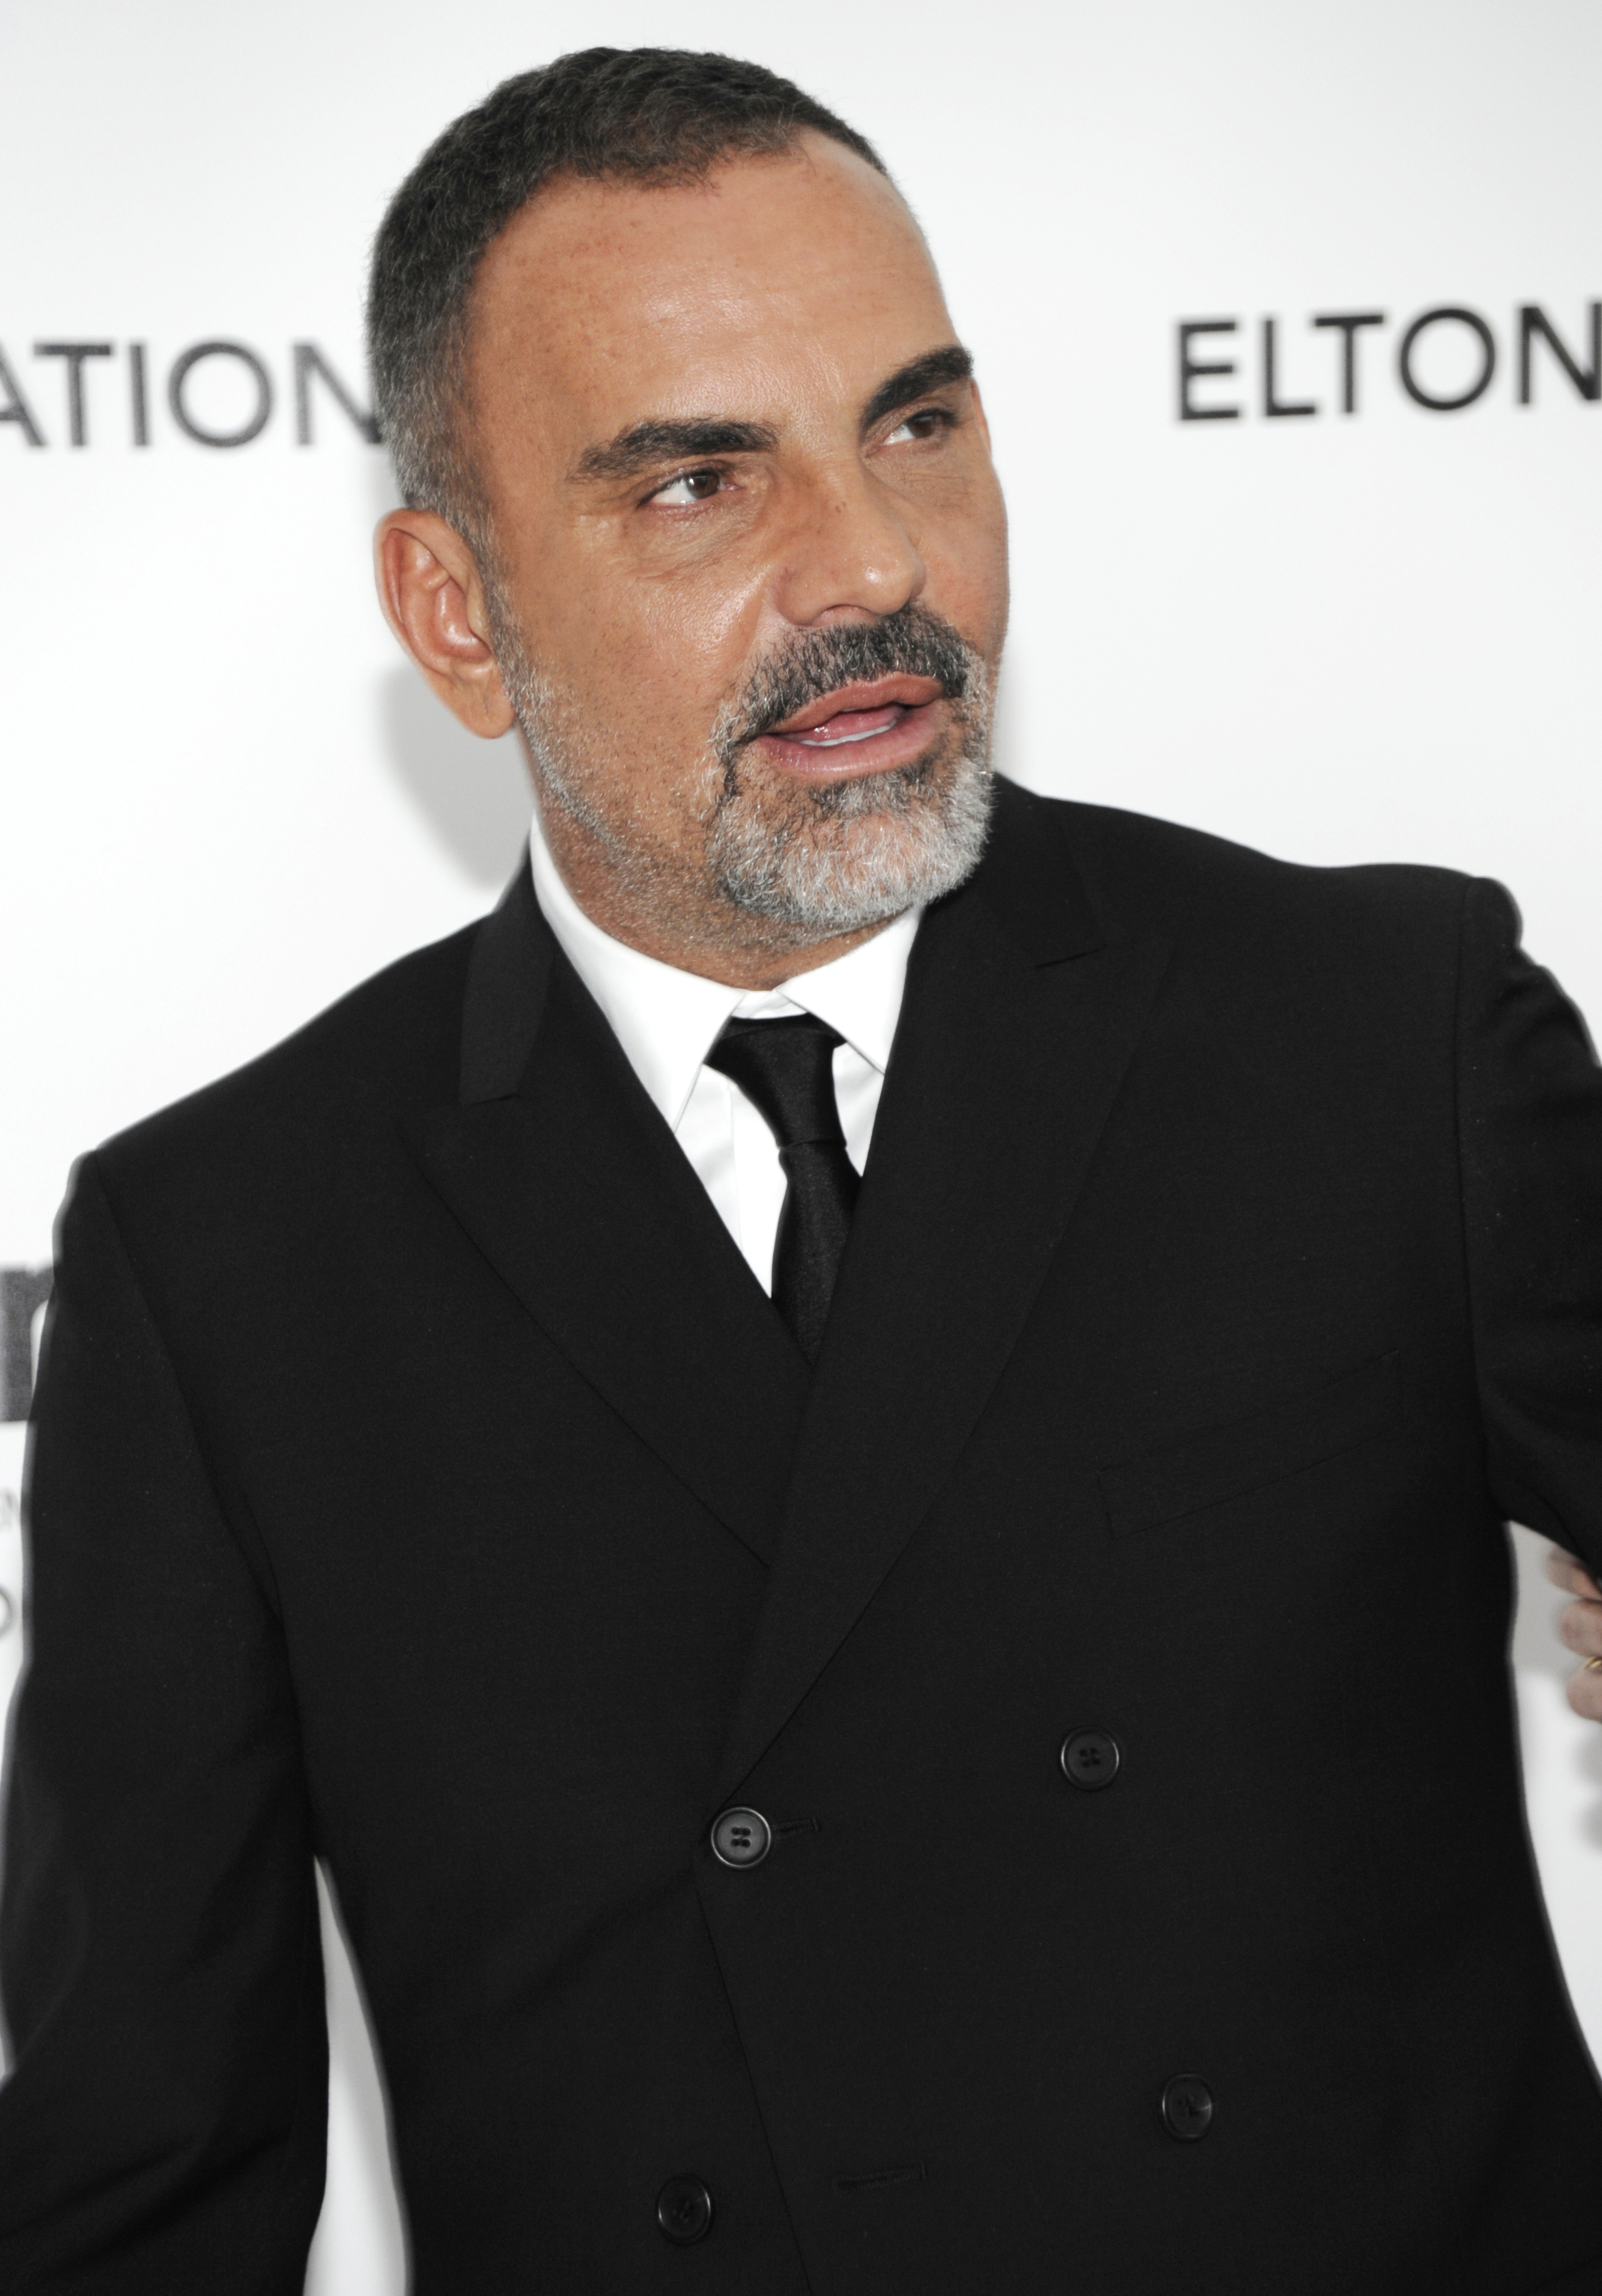 Christian Audigier at the Elton John AIDS Foundation Academy Awards viewing party in West Hollywood, Calif. on Feb. 26, 2012.